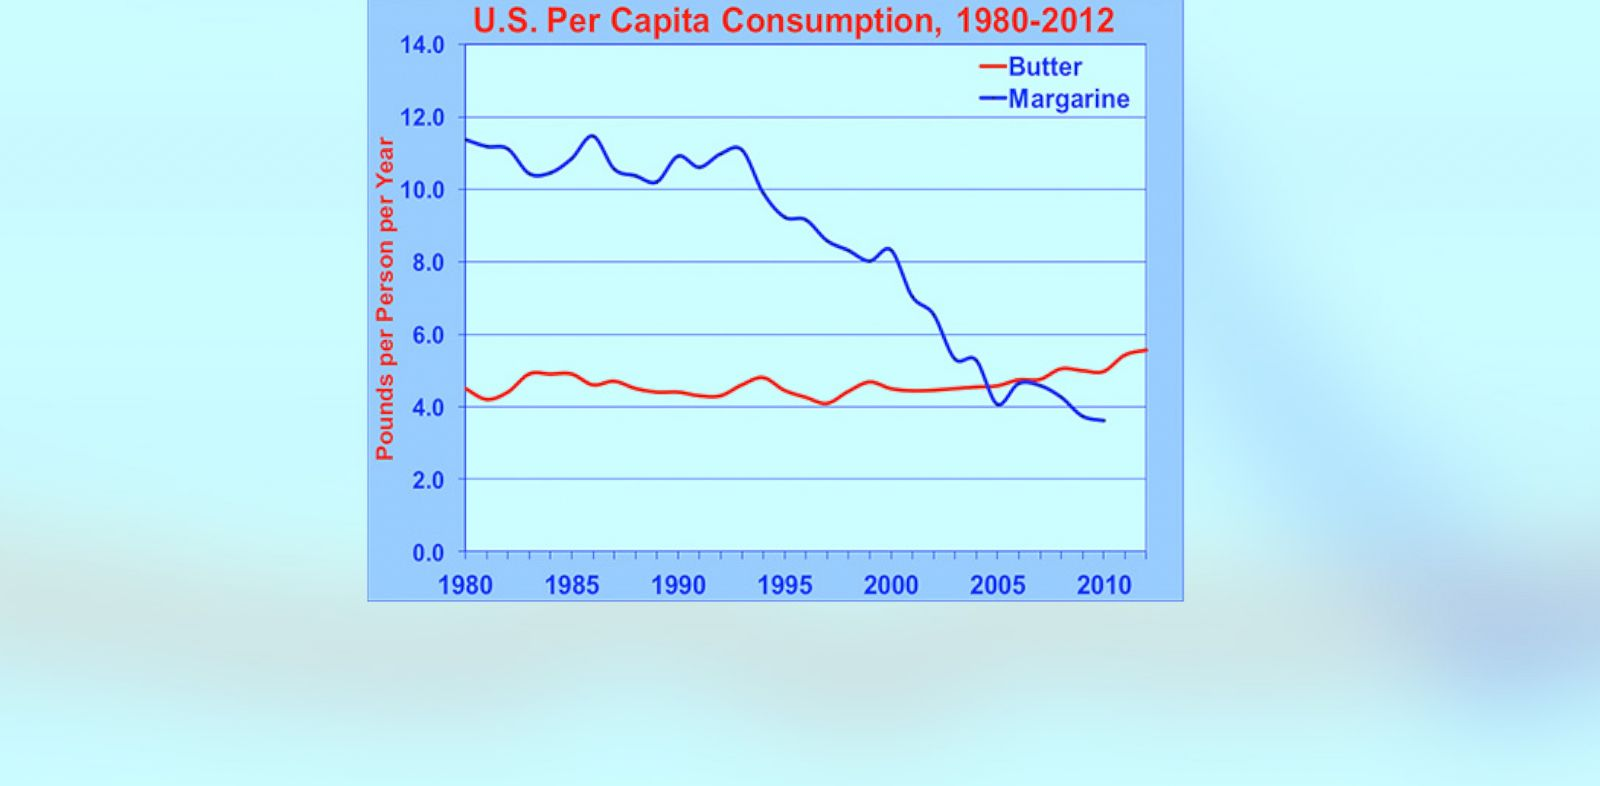 PHOTO: Butter consumption is now at a 40-year high, up 25% in the past decade.